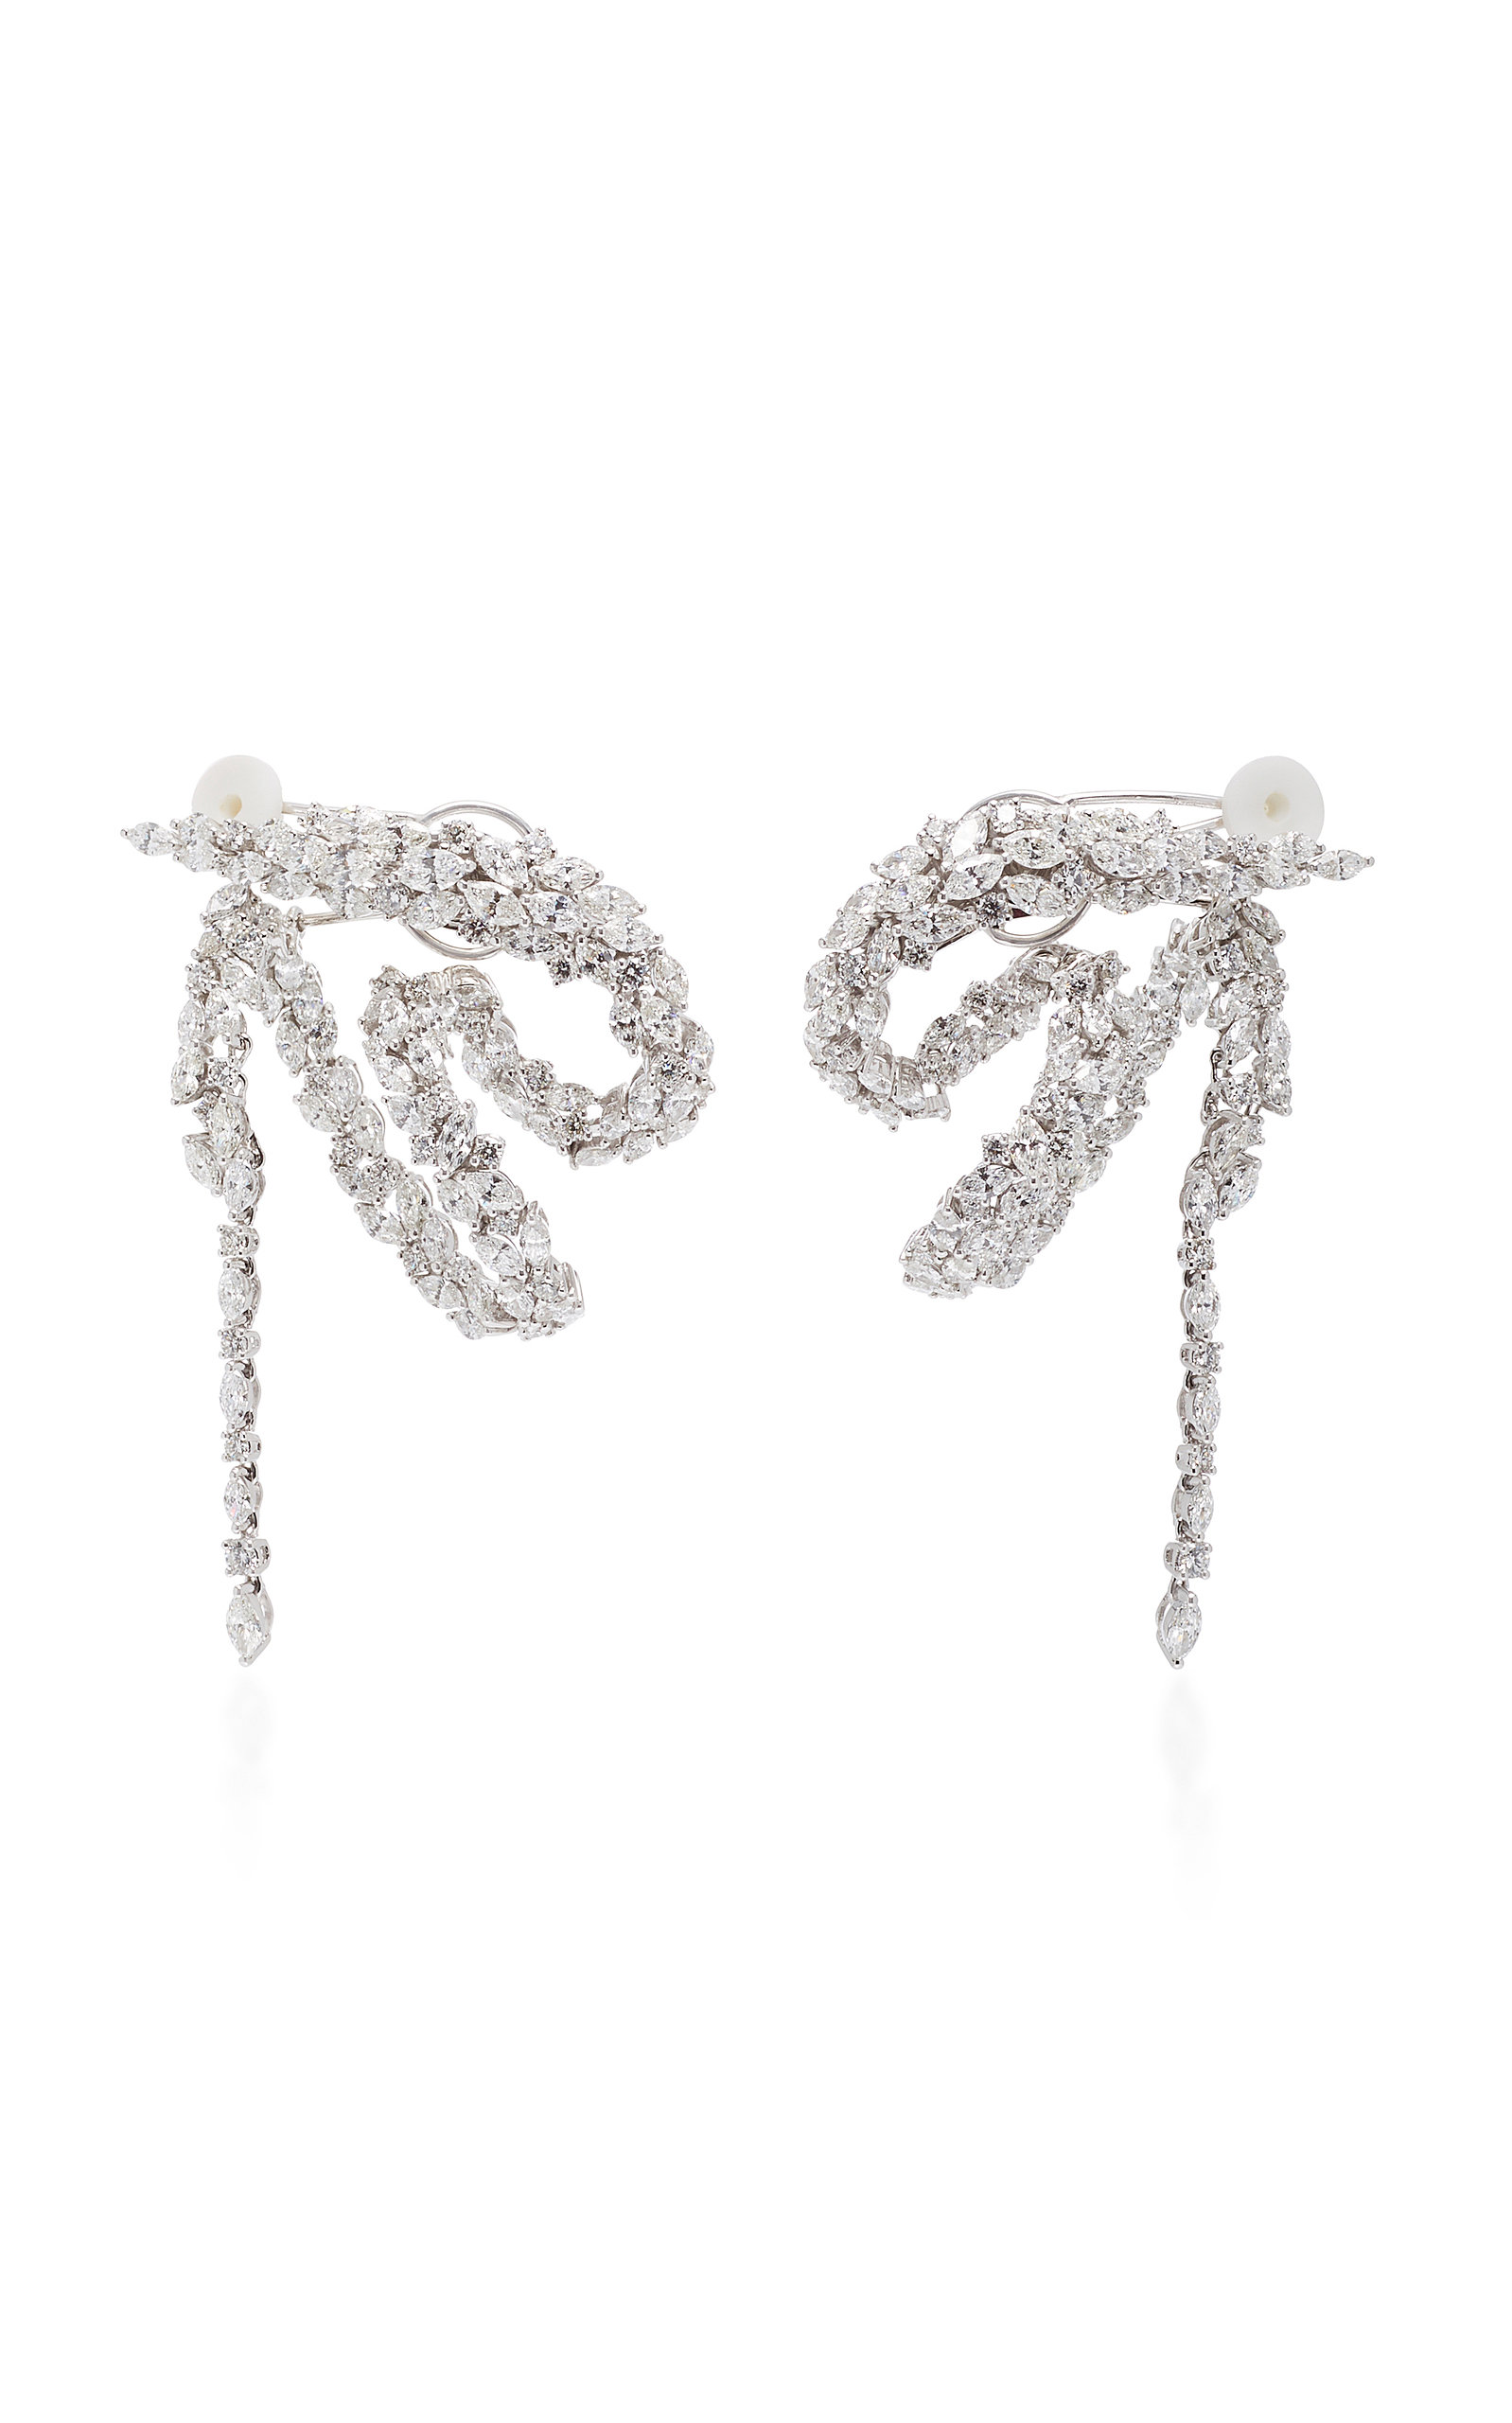 Yeprem Chevalier Waterfall Earrings